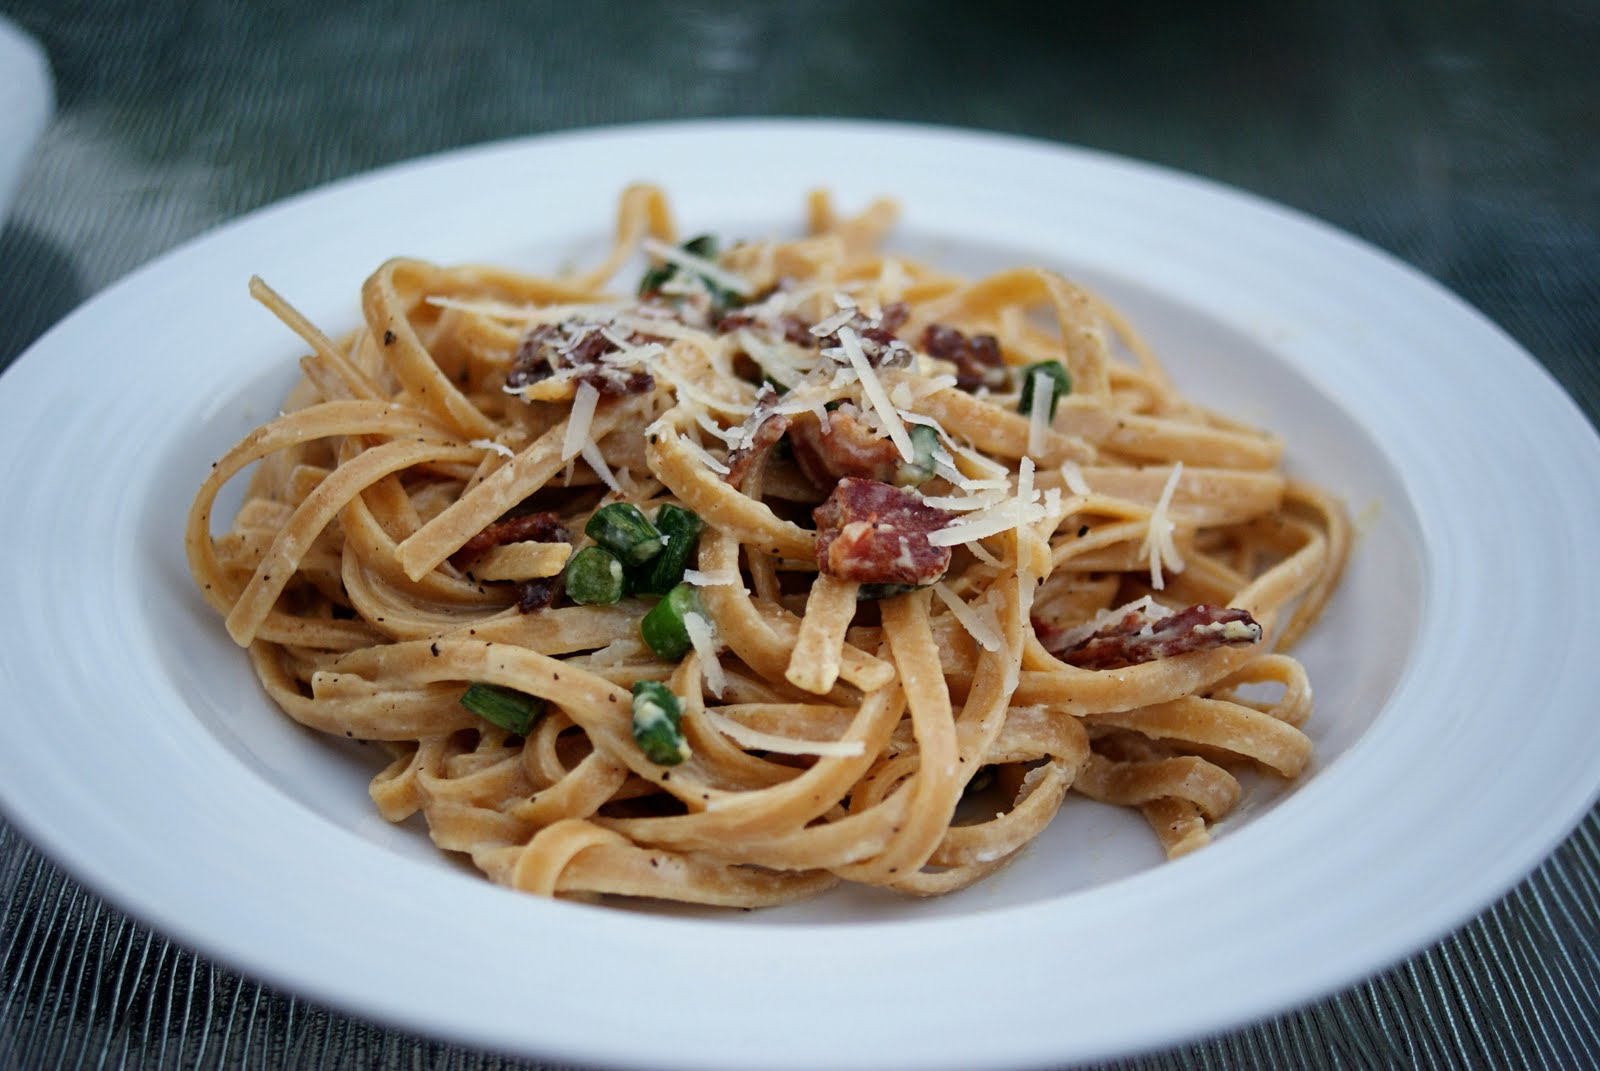 no reEATS: Garlic Scape Fettuccine Carbonara